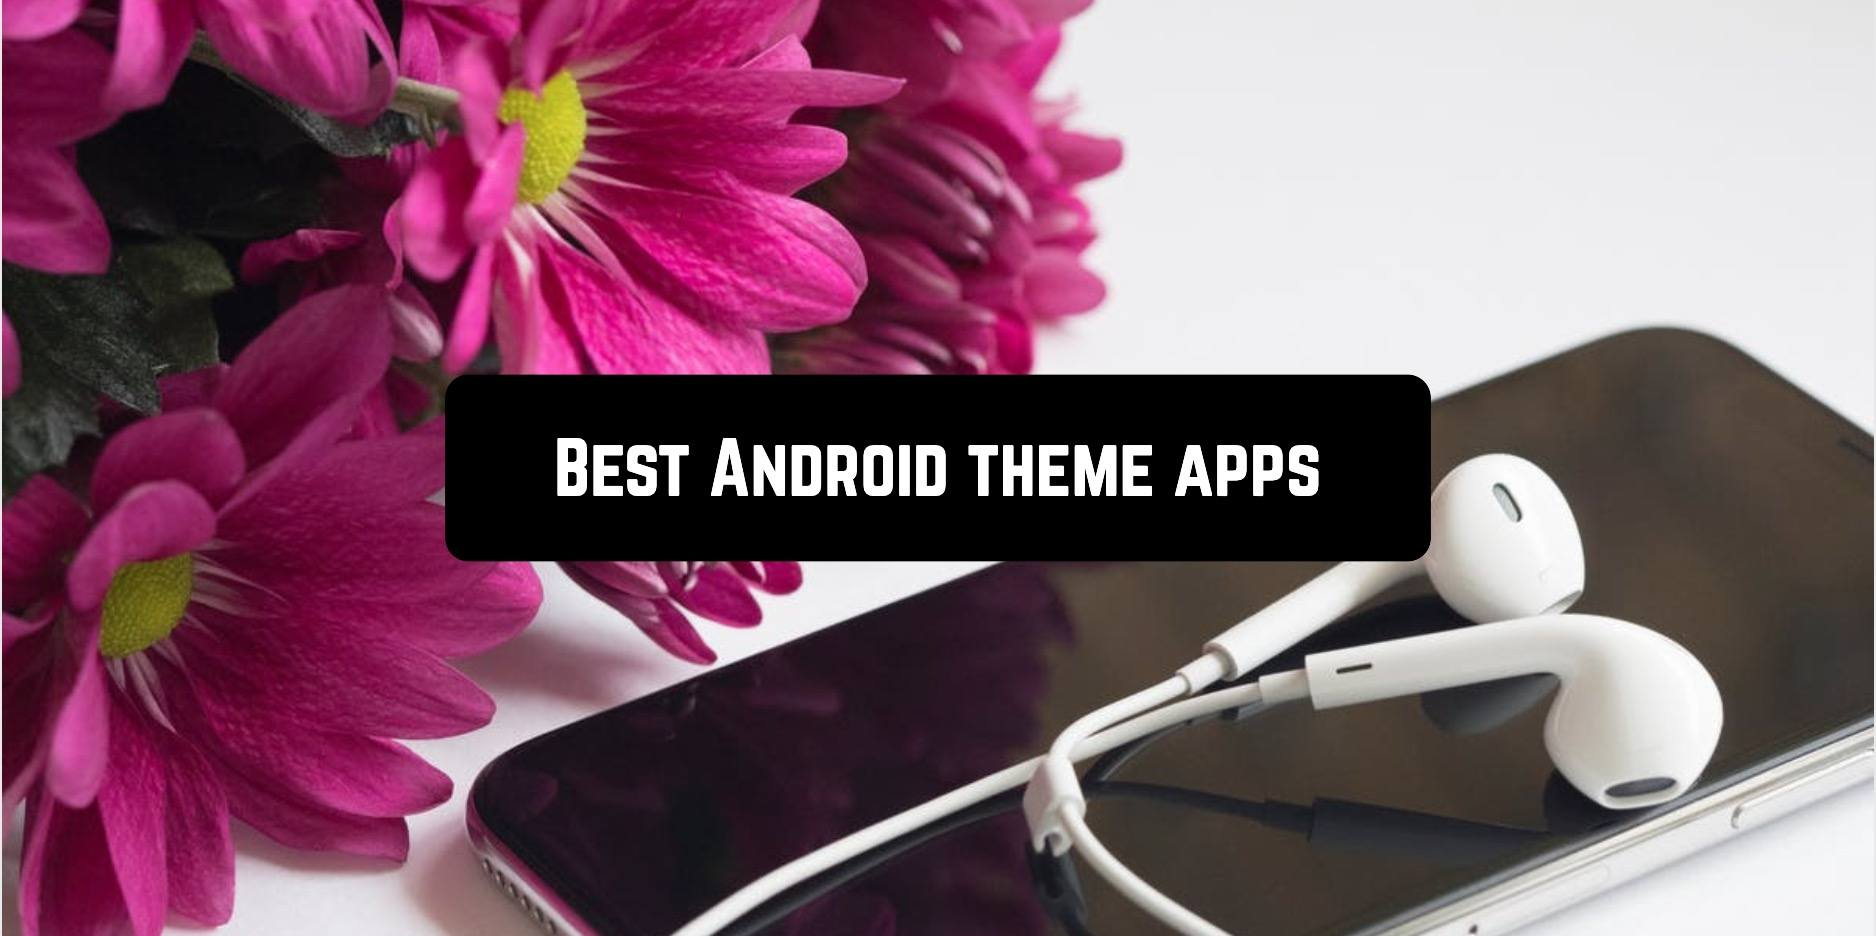 Best Android theme apps